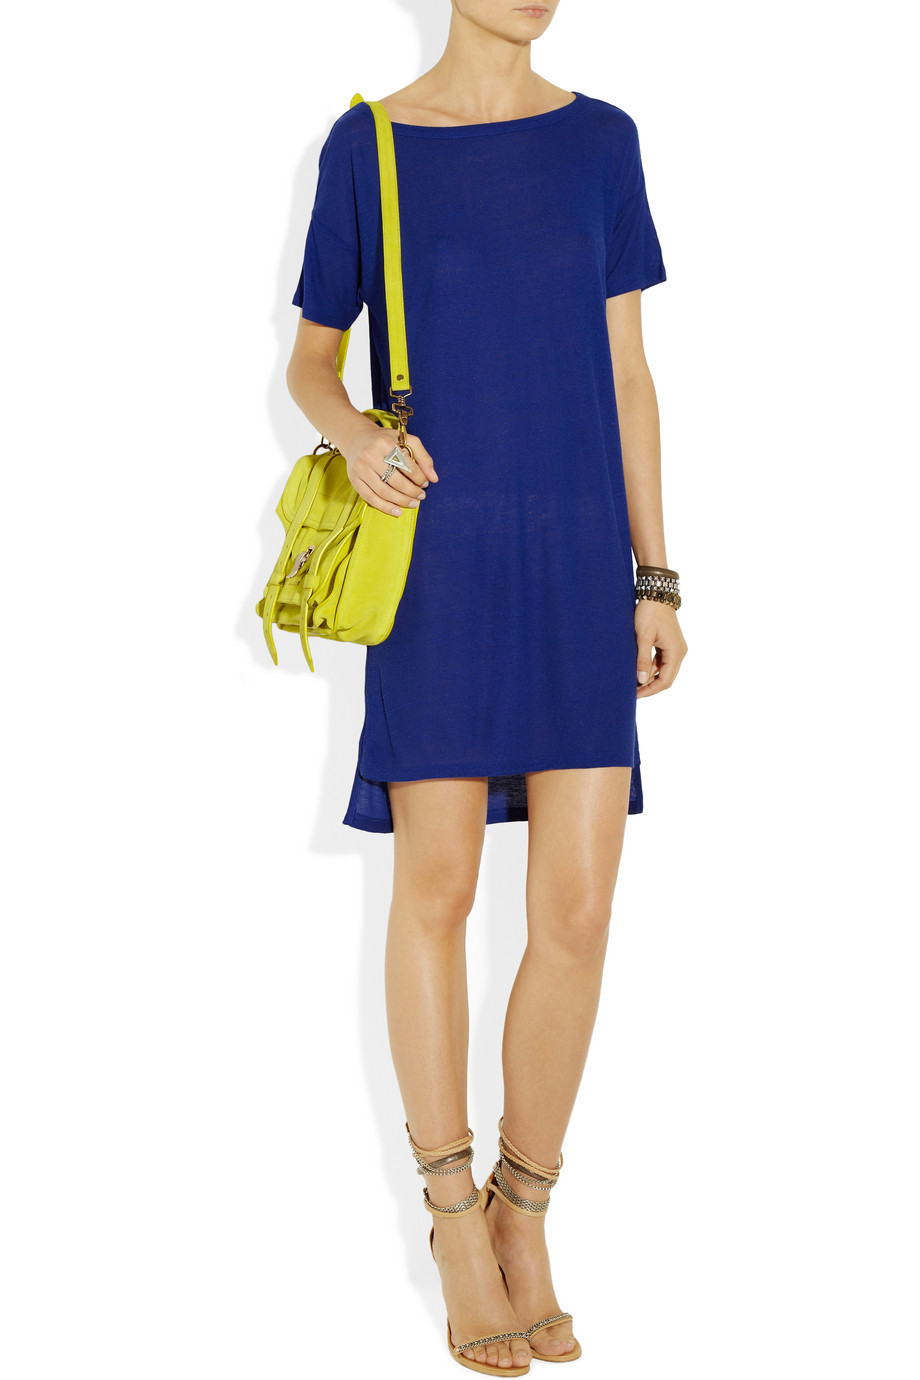 Caty S Choice New In Net A Porter